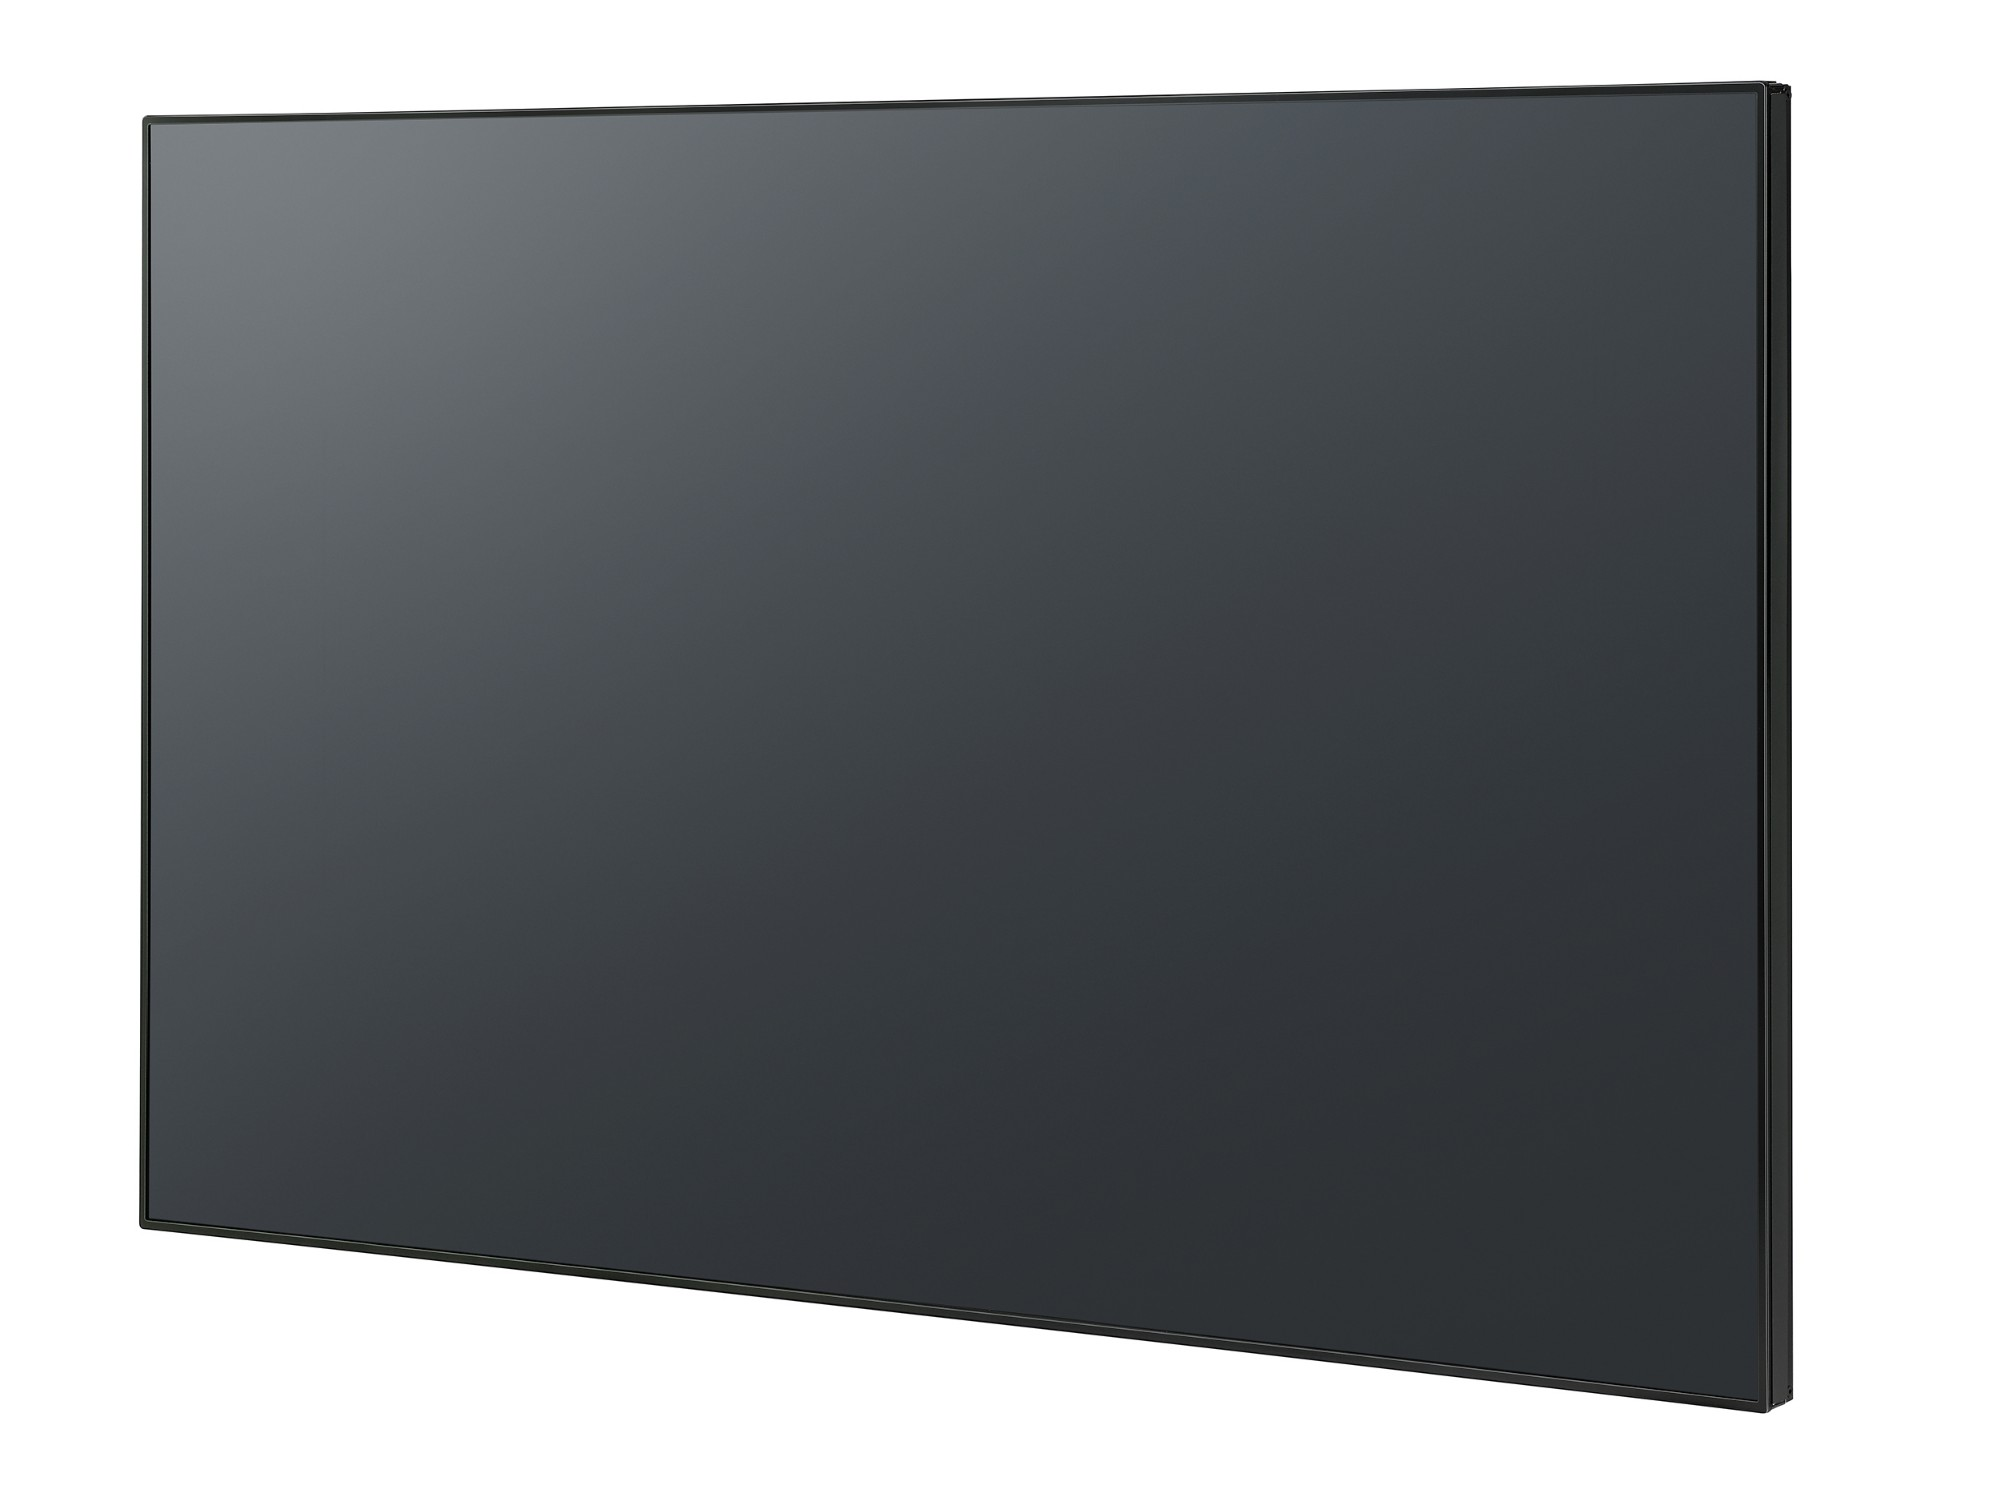 "Panasonic TH-55LF80W signage display 139.7 cm (55"") LED Full HD Digital signage flat panel Black"